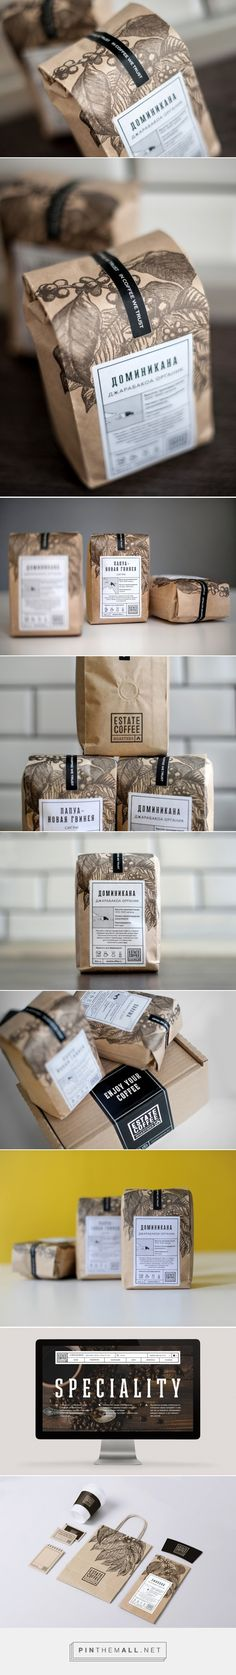 "Estate Coffee Roasters packaging designed by AHEAD (Russia) - <a href=""http://www.packagingoftheworld.com/2016/02/estate-coffee-roasters.html"" rel=""nofollow"" target=""_blank"">www.packagingofth...</a>"